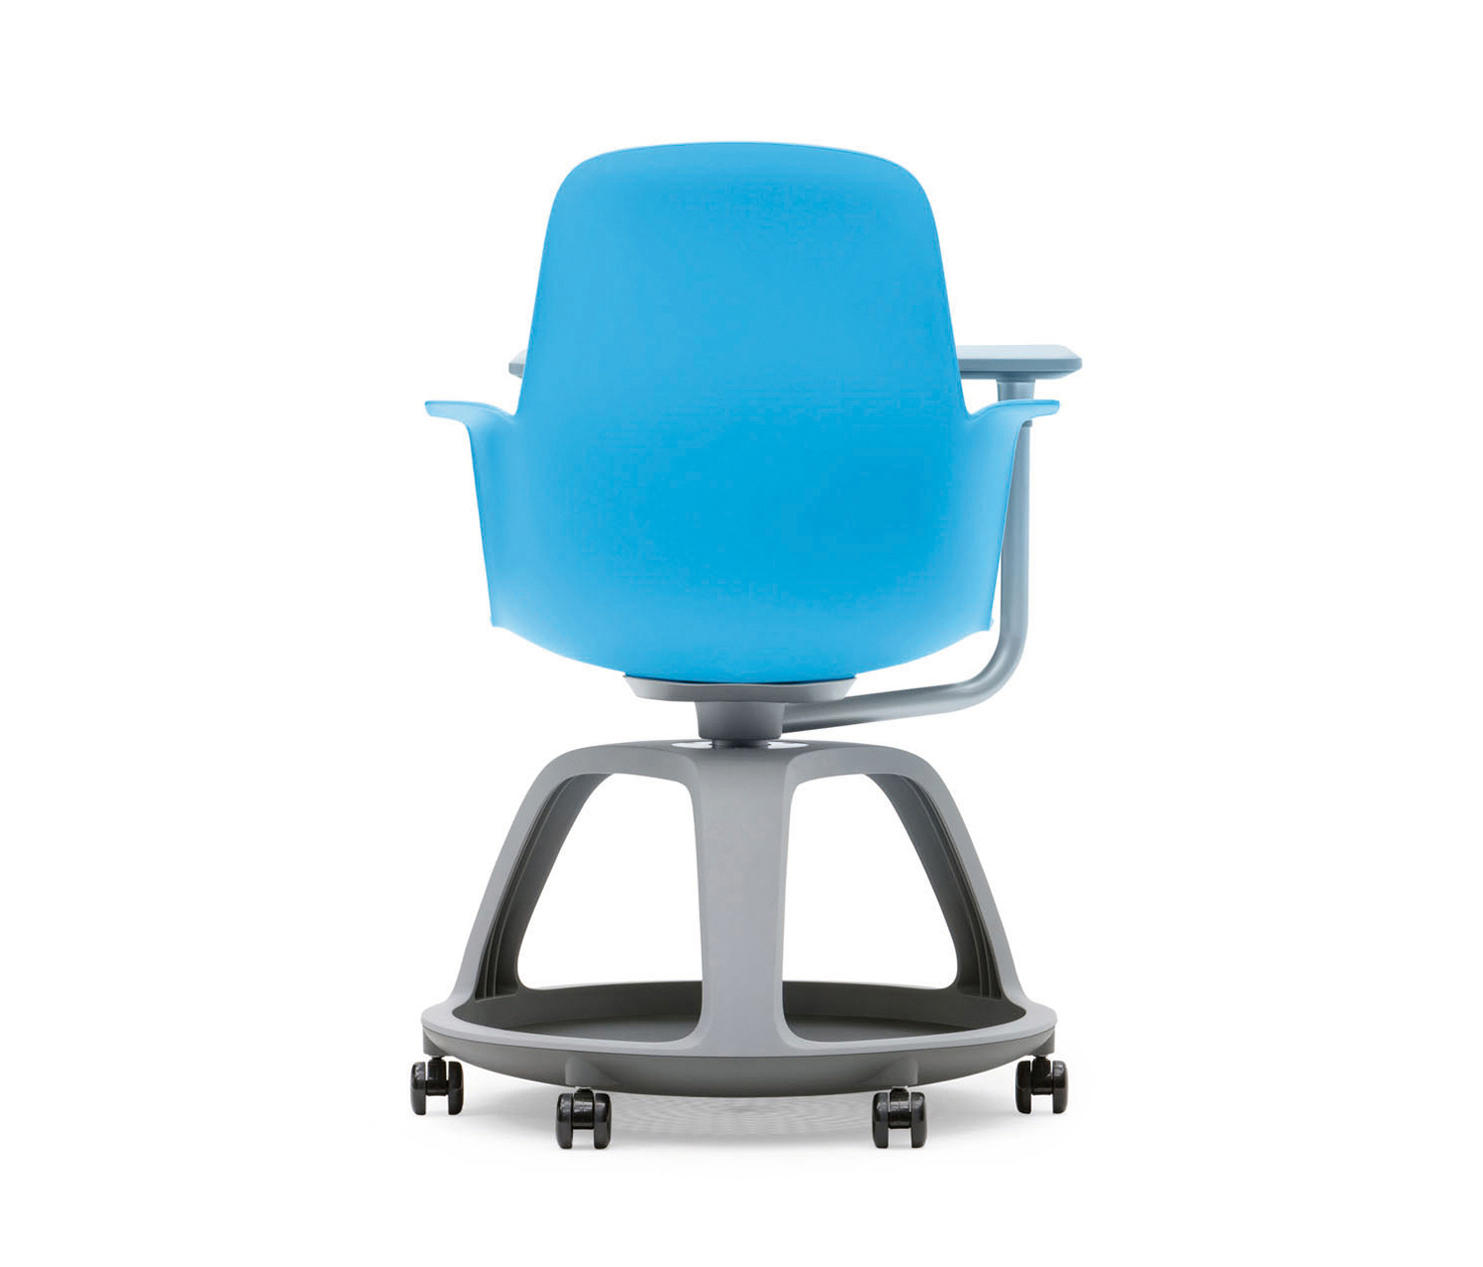 steelcase node chairs. Node By Steelcase | Classroom / School Chairs N